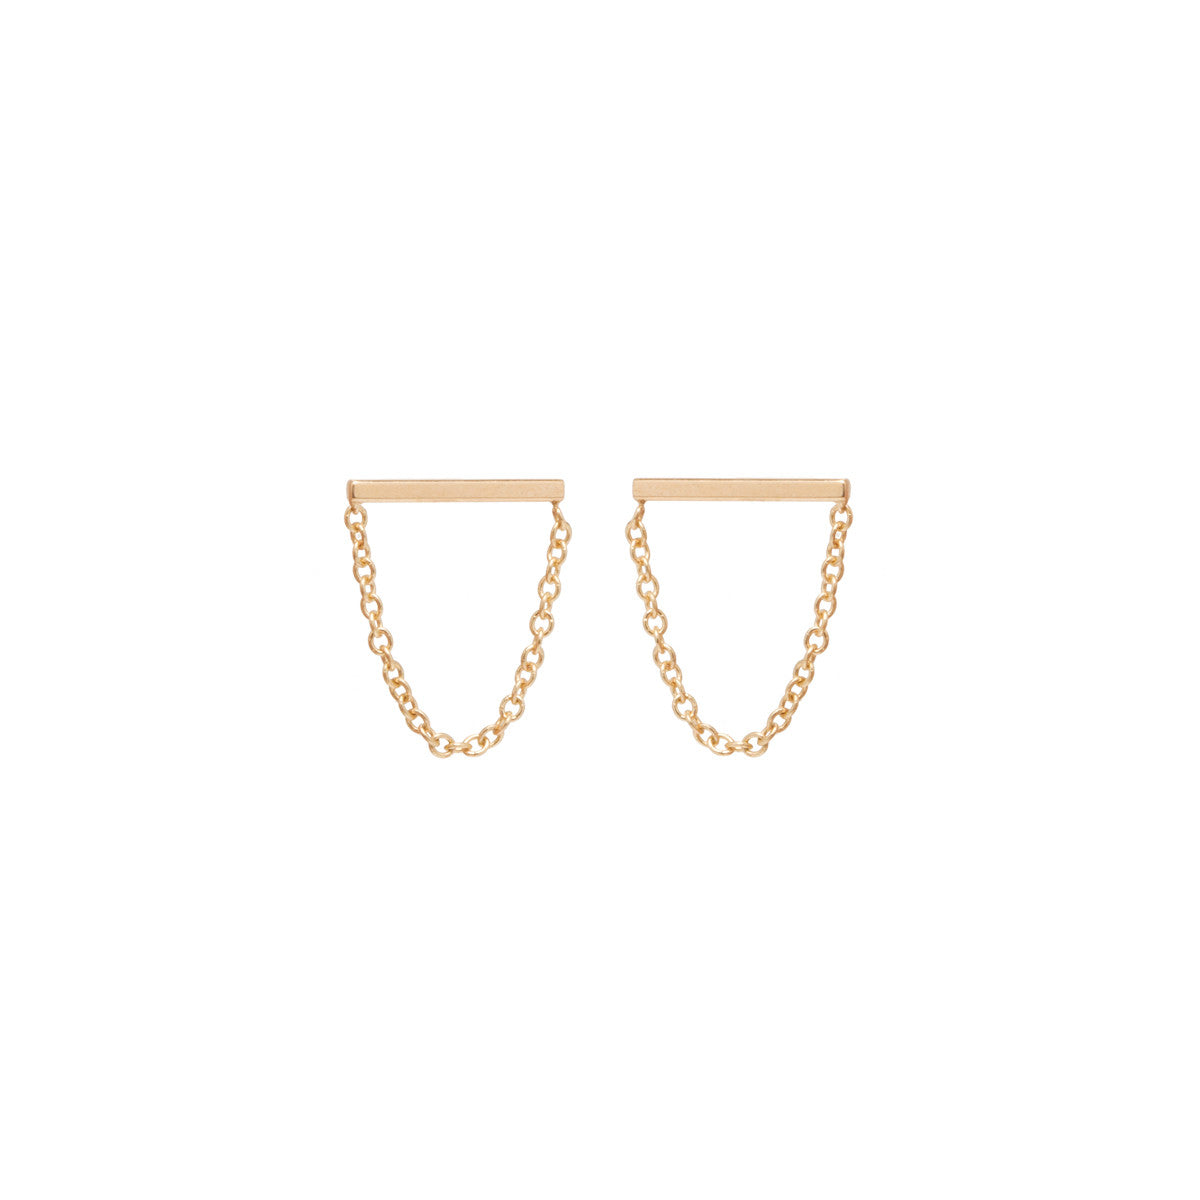 Zoë Chicco 14kt Yellow Gold Chain Bar Stud Drop Earrings